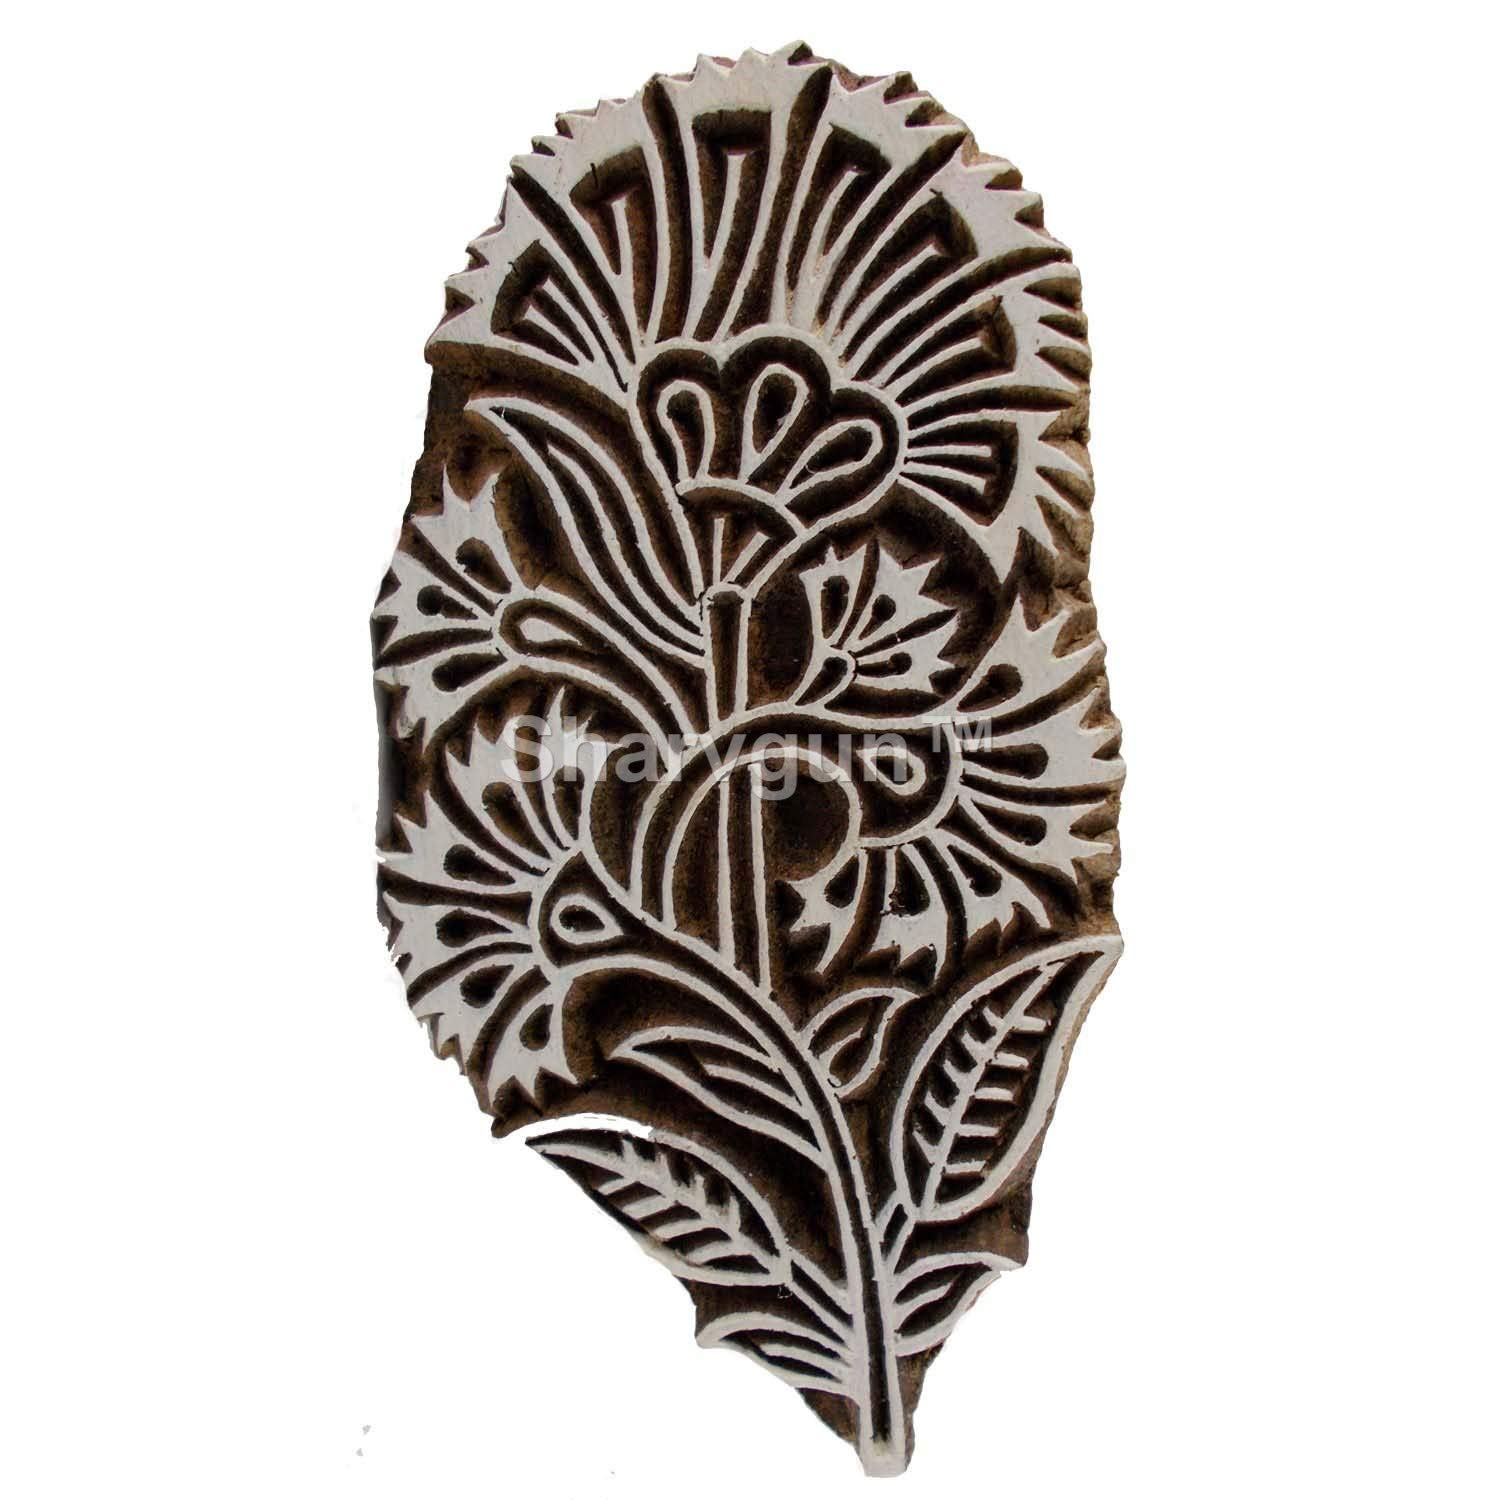 Zig Zag Printing Block Wooden Stamp Block Pottery Crafts /& Textile Hand-Carved